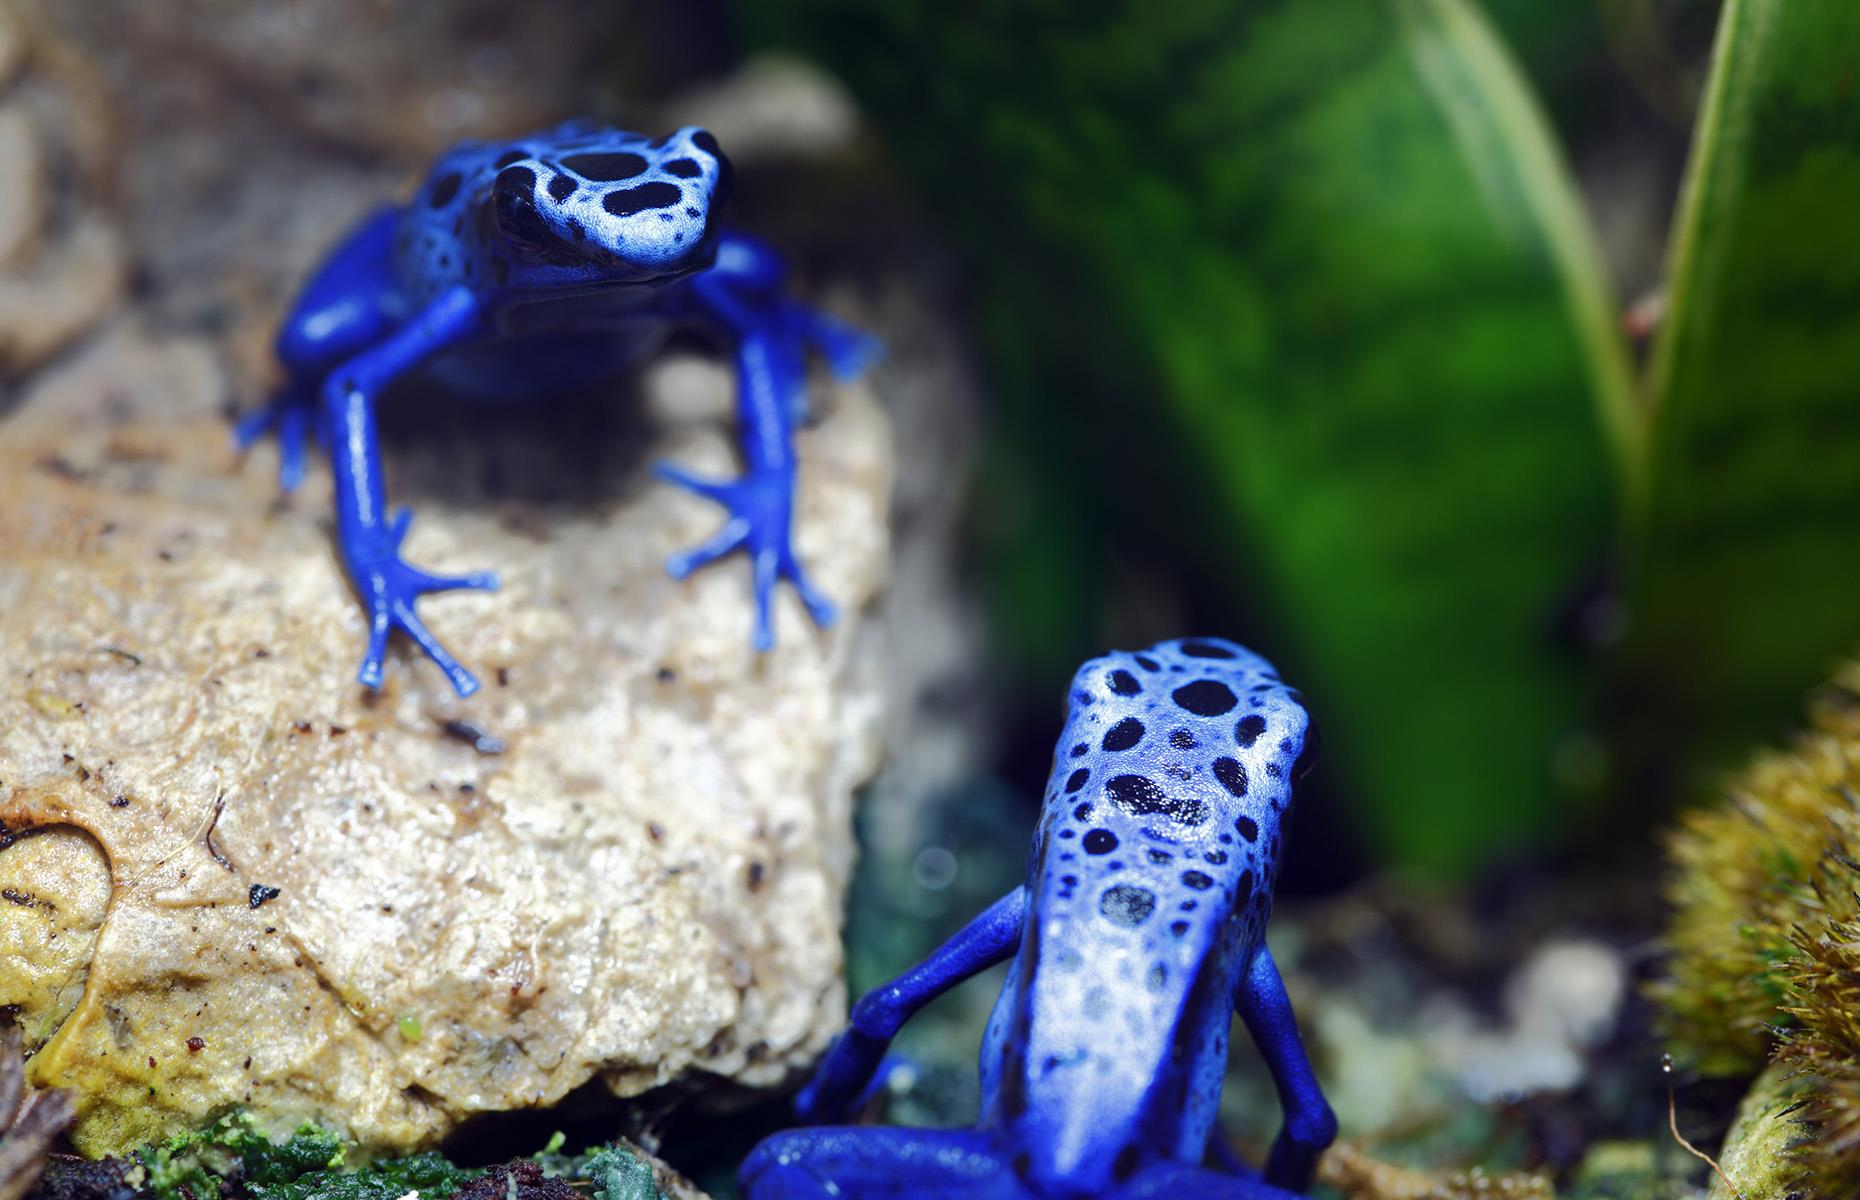 Slide 27 of 44: There are communities of Saramacca people and indigenous Surinamese tribes living within the rainforest, but foreigners rarely make it into the thick of it. The locals are incredibly outnumbered by curious creatures instead, including the likes of this blue poison dart frog.